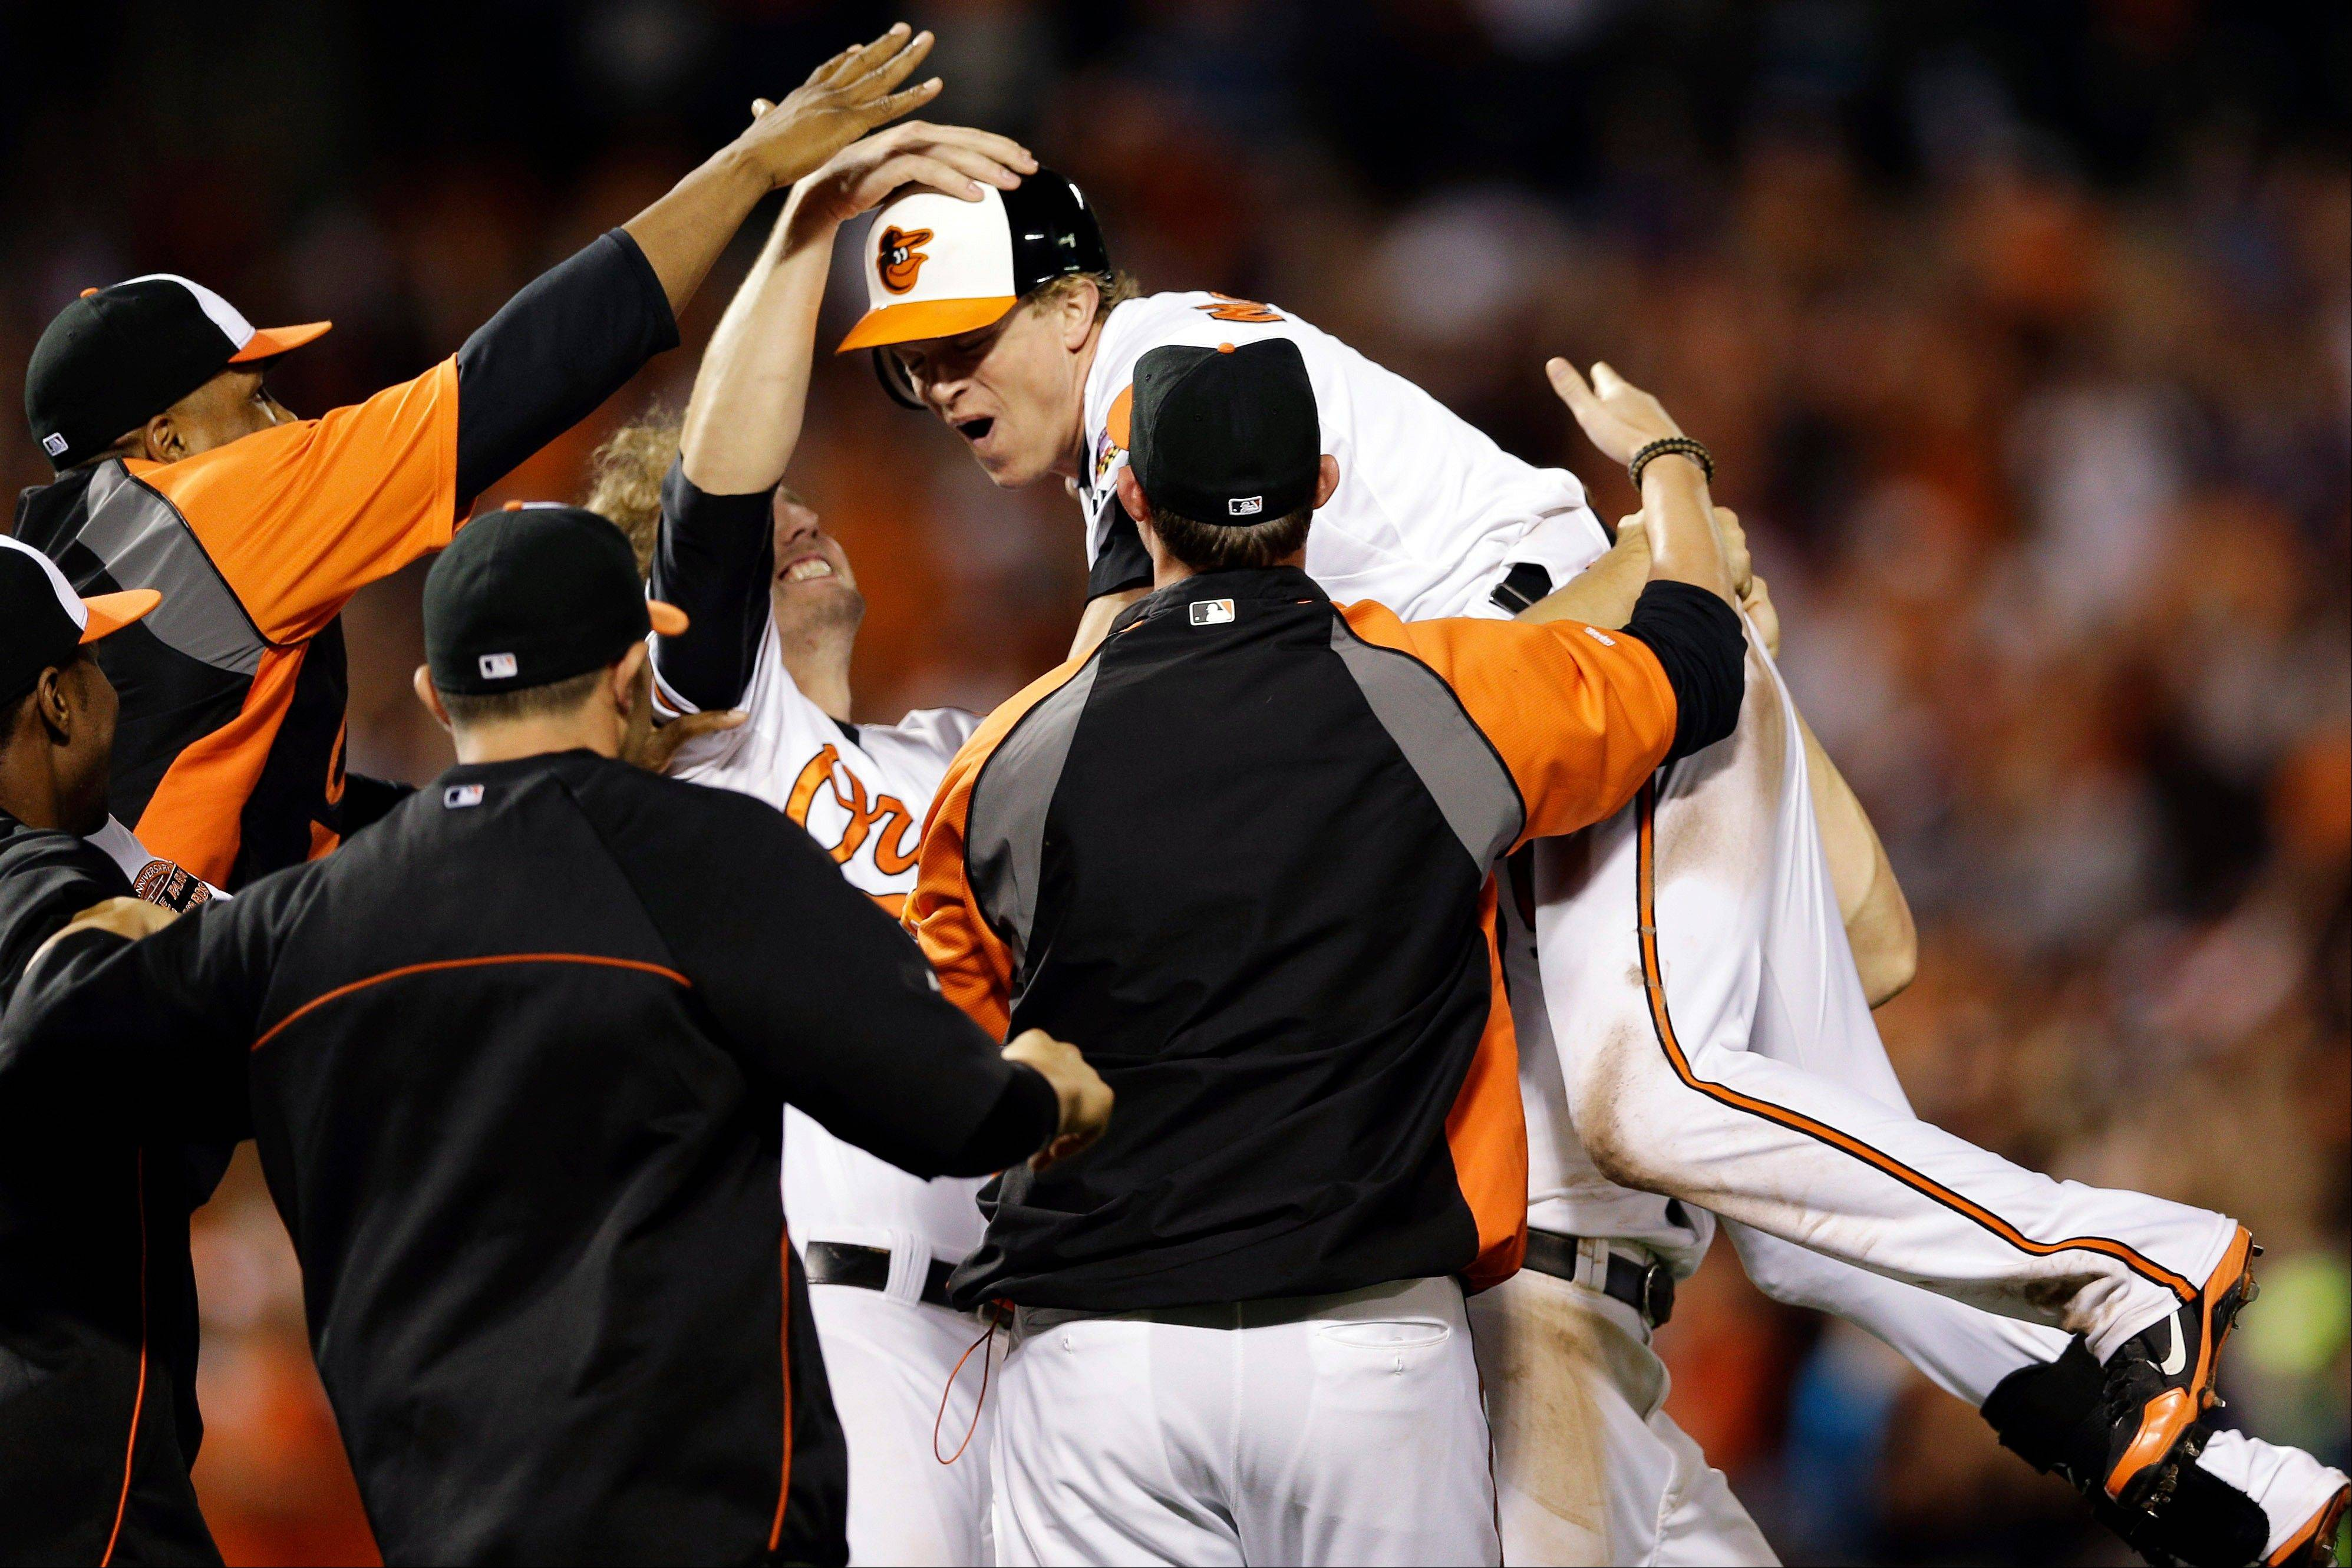 The Orioles' Nate McLouth, center, celebrates with teammates after driving in Manny Machado for the game-winning run Wednesday against the Tampa Bay Rays in Baltimore.